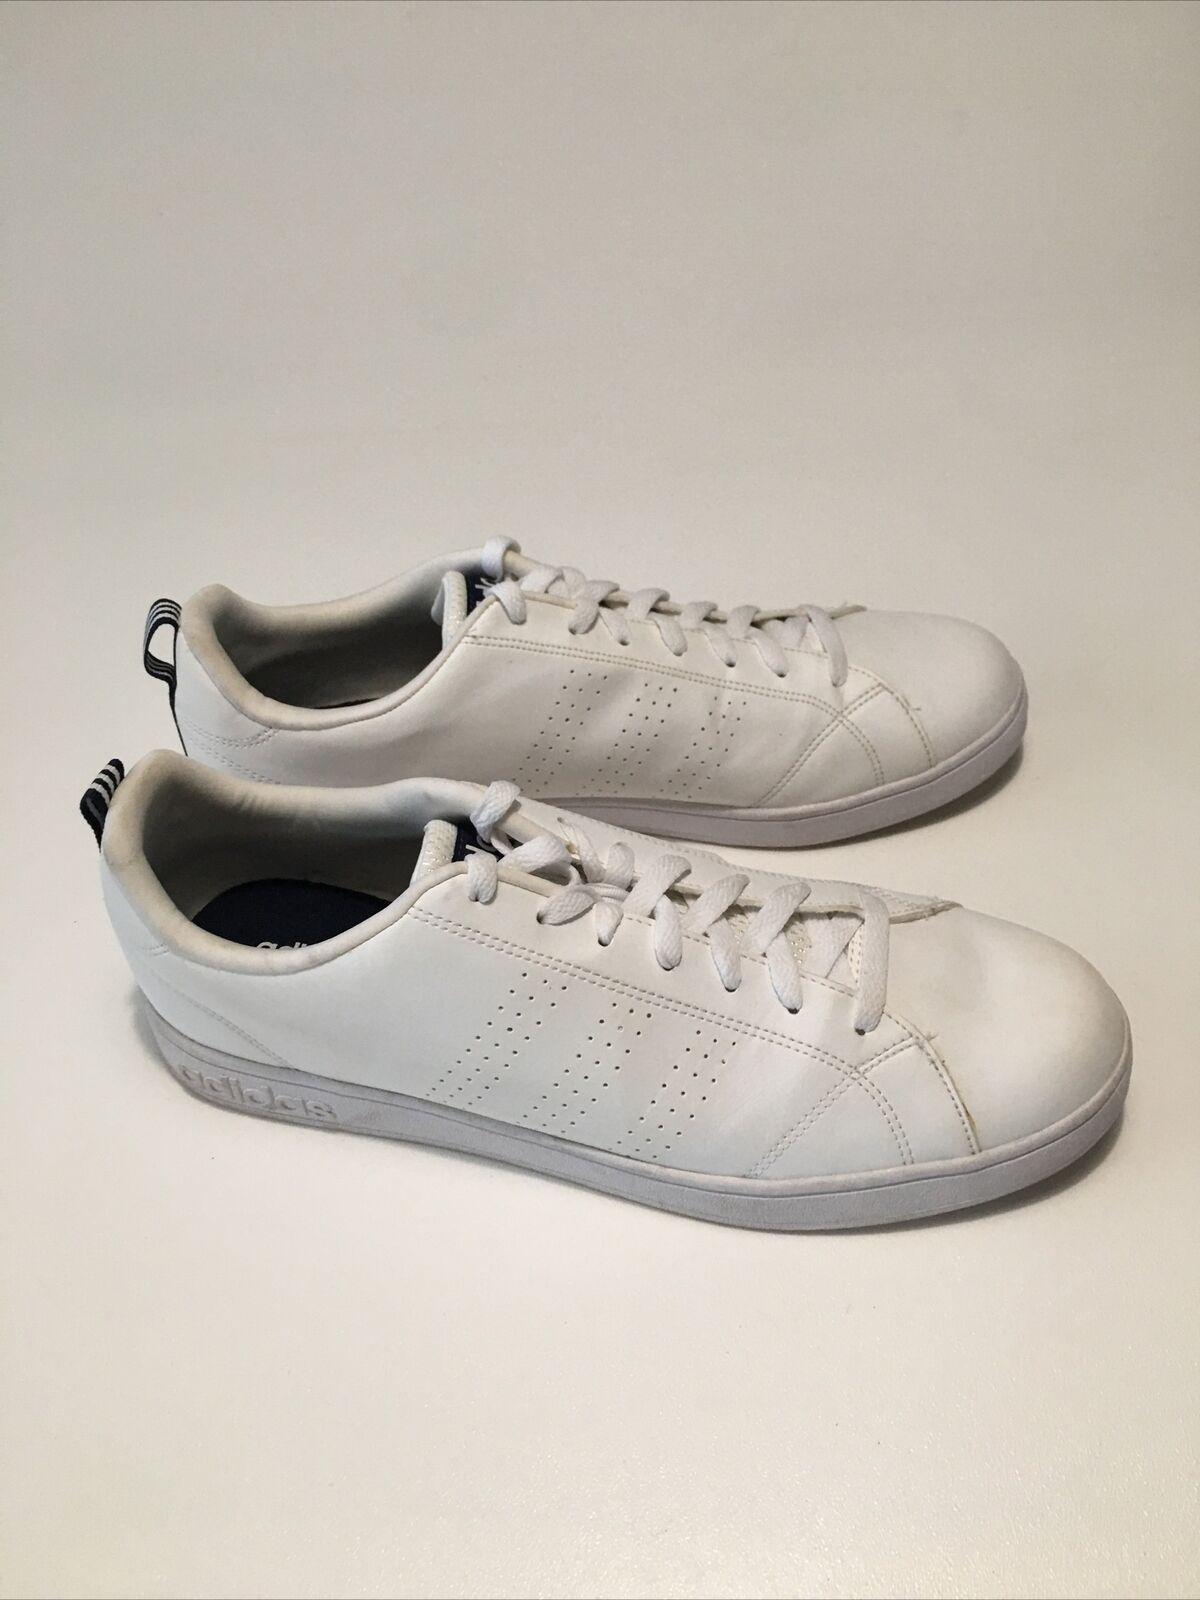 ADIDAS NEO ADVANTAGE CLEAN (F99252) CASUAL SNEAKERS M… - Gem